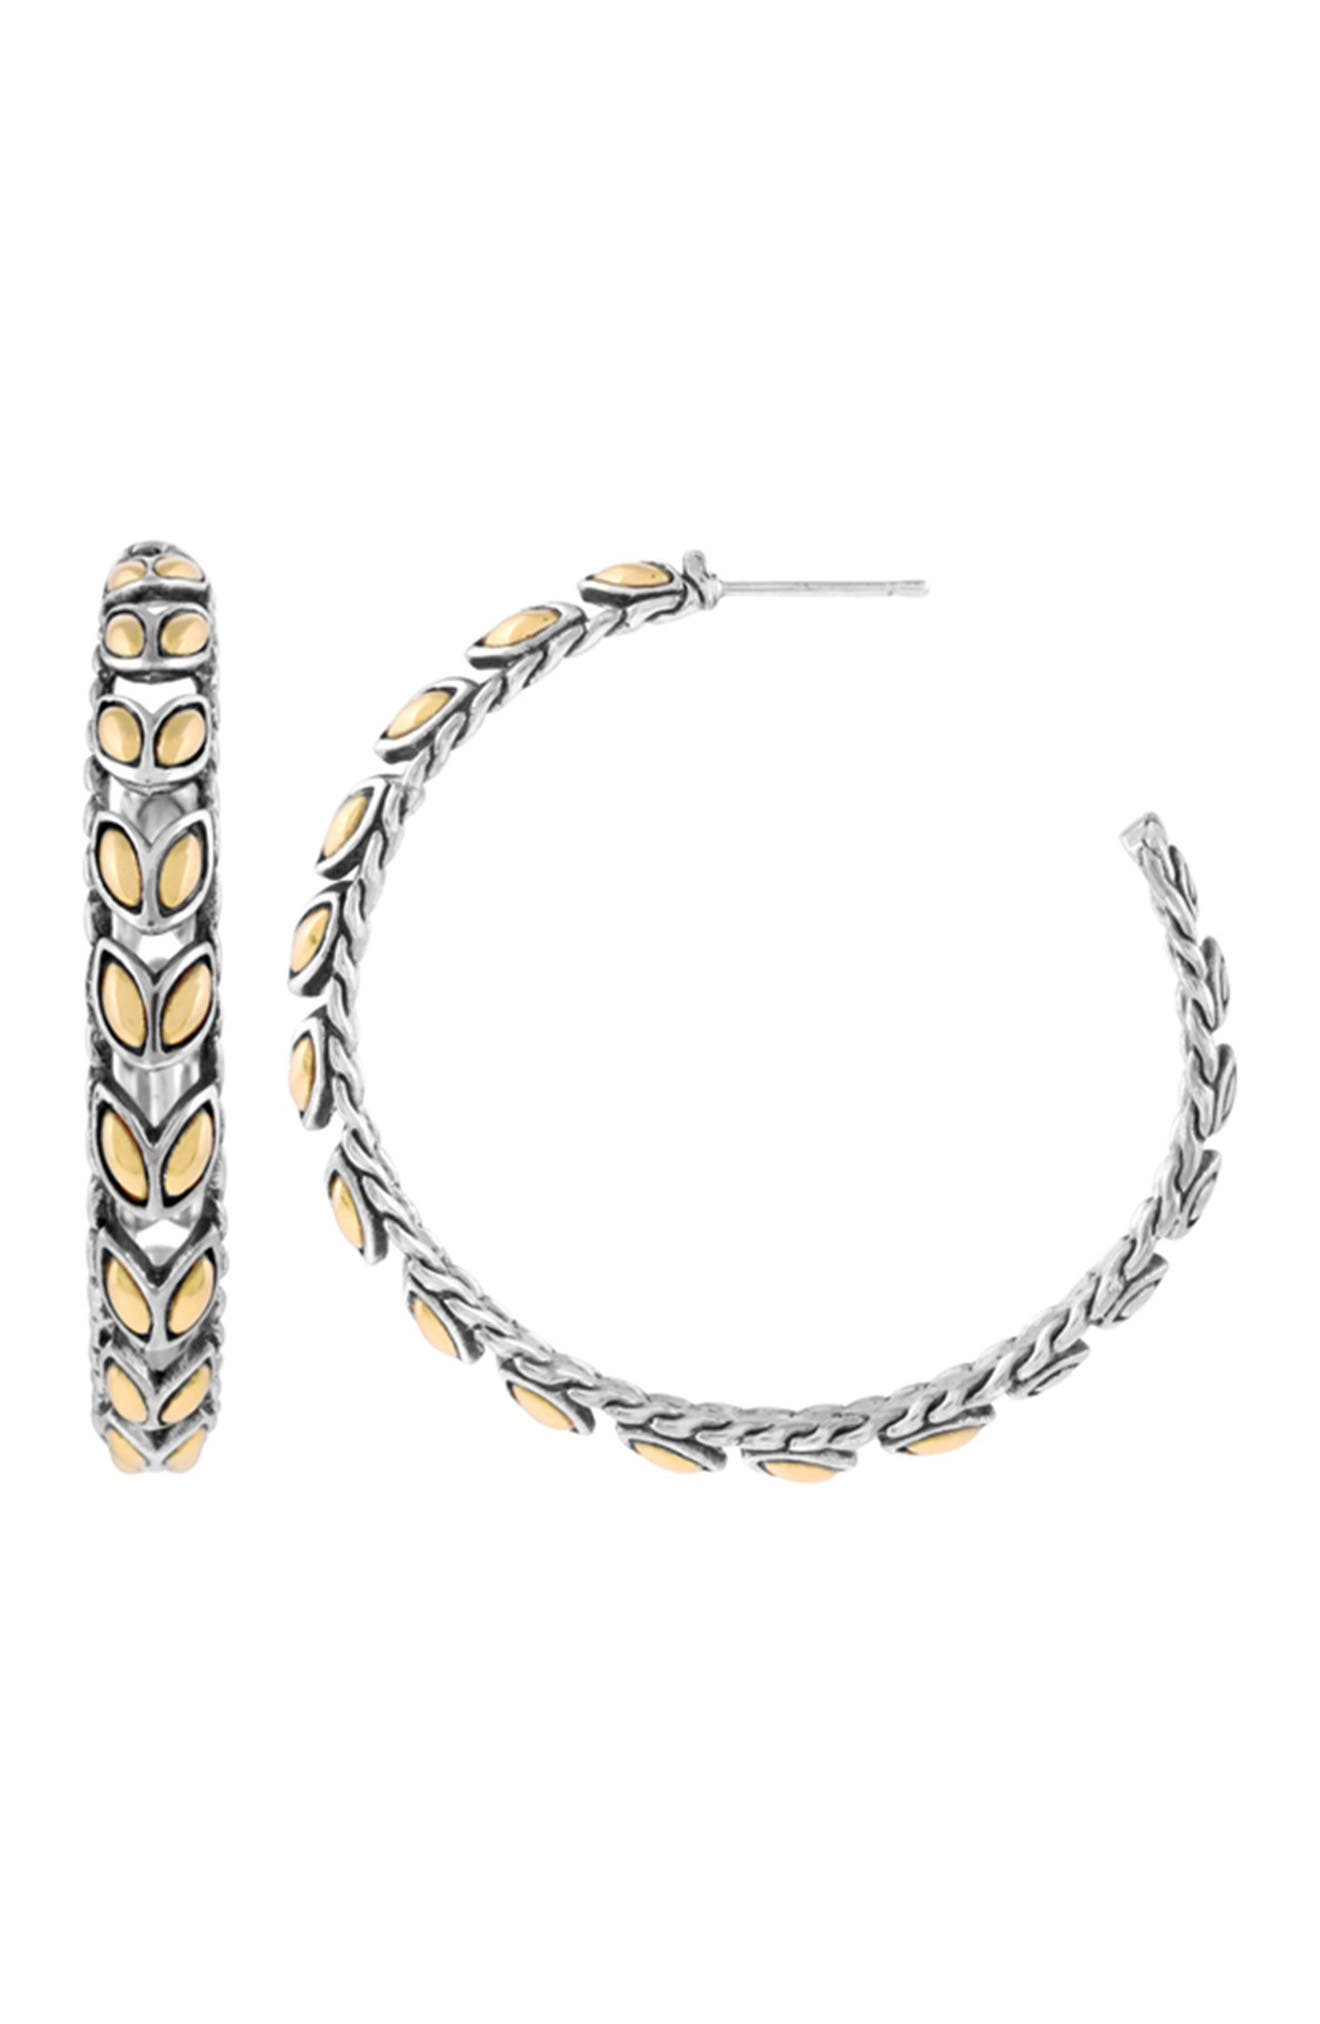 Image of JOHN HARDY 18K gold & Sterling Silver 44.5mm Large Hoop Earrings